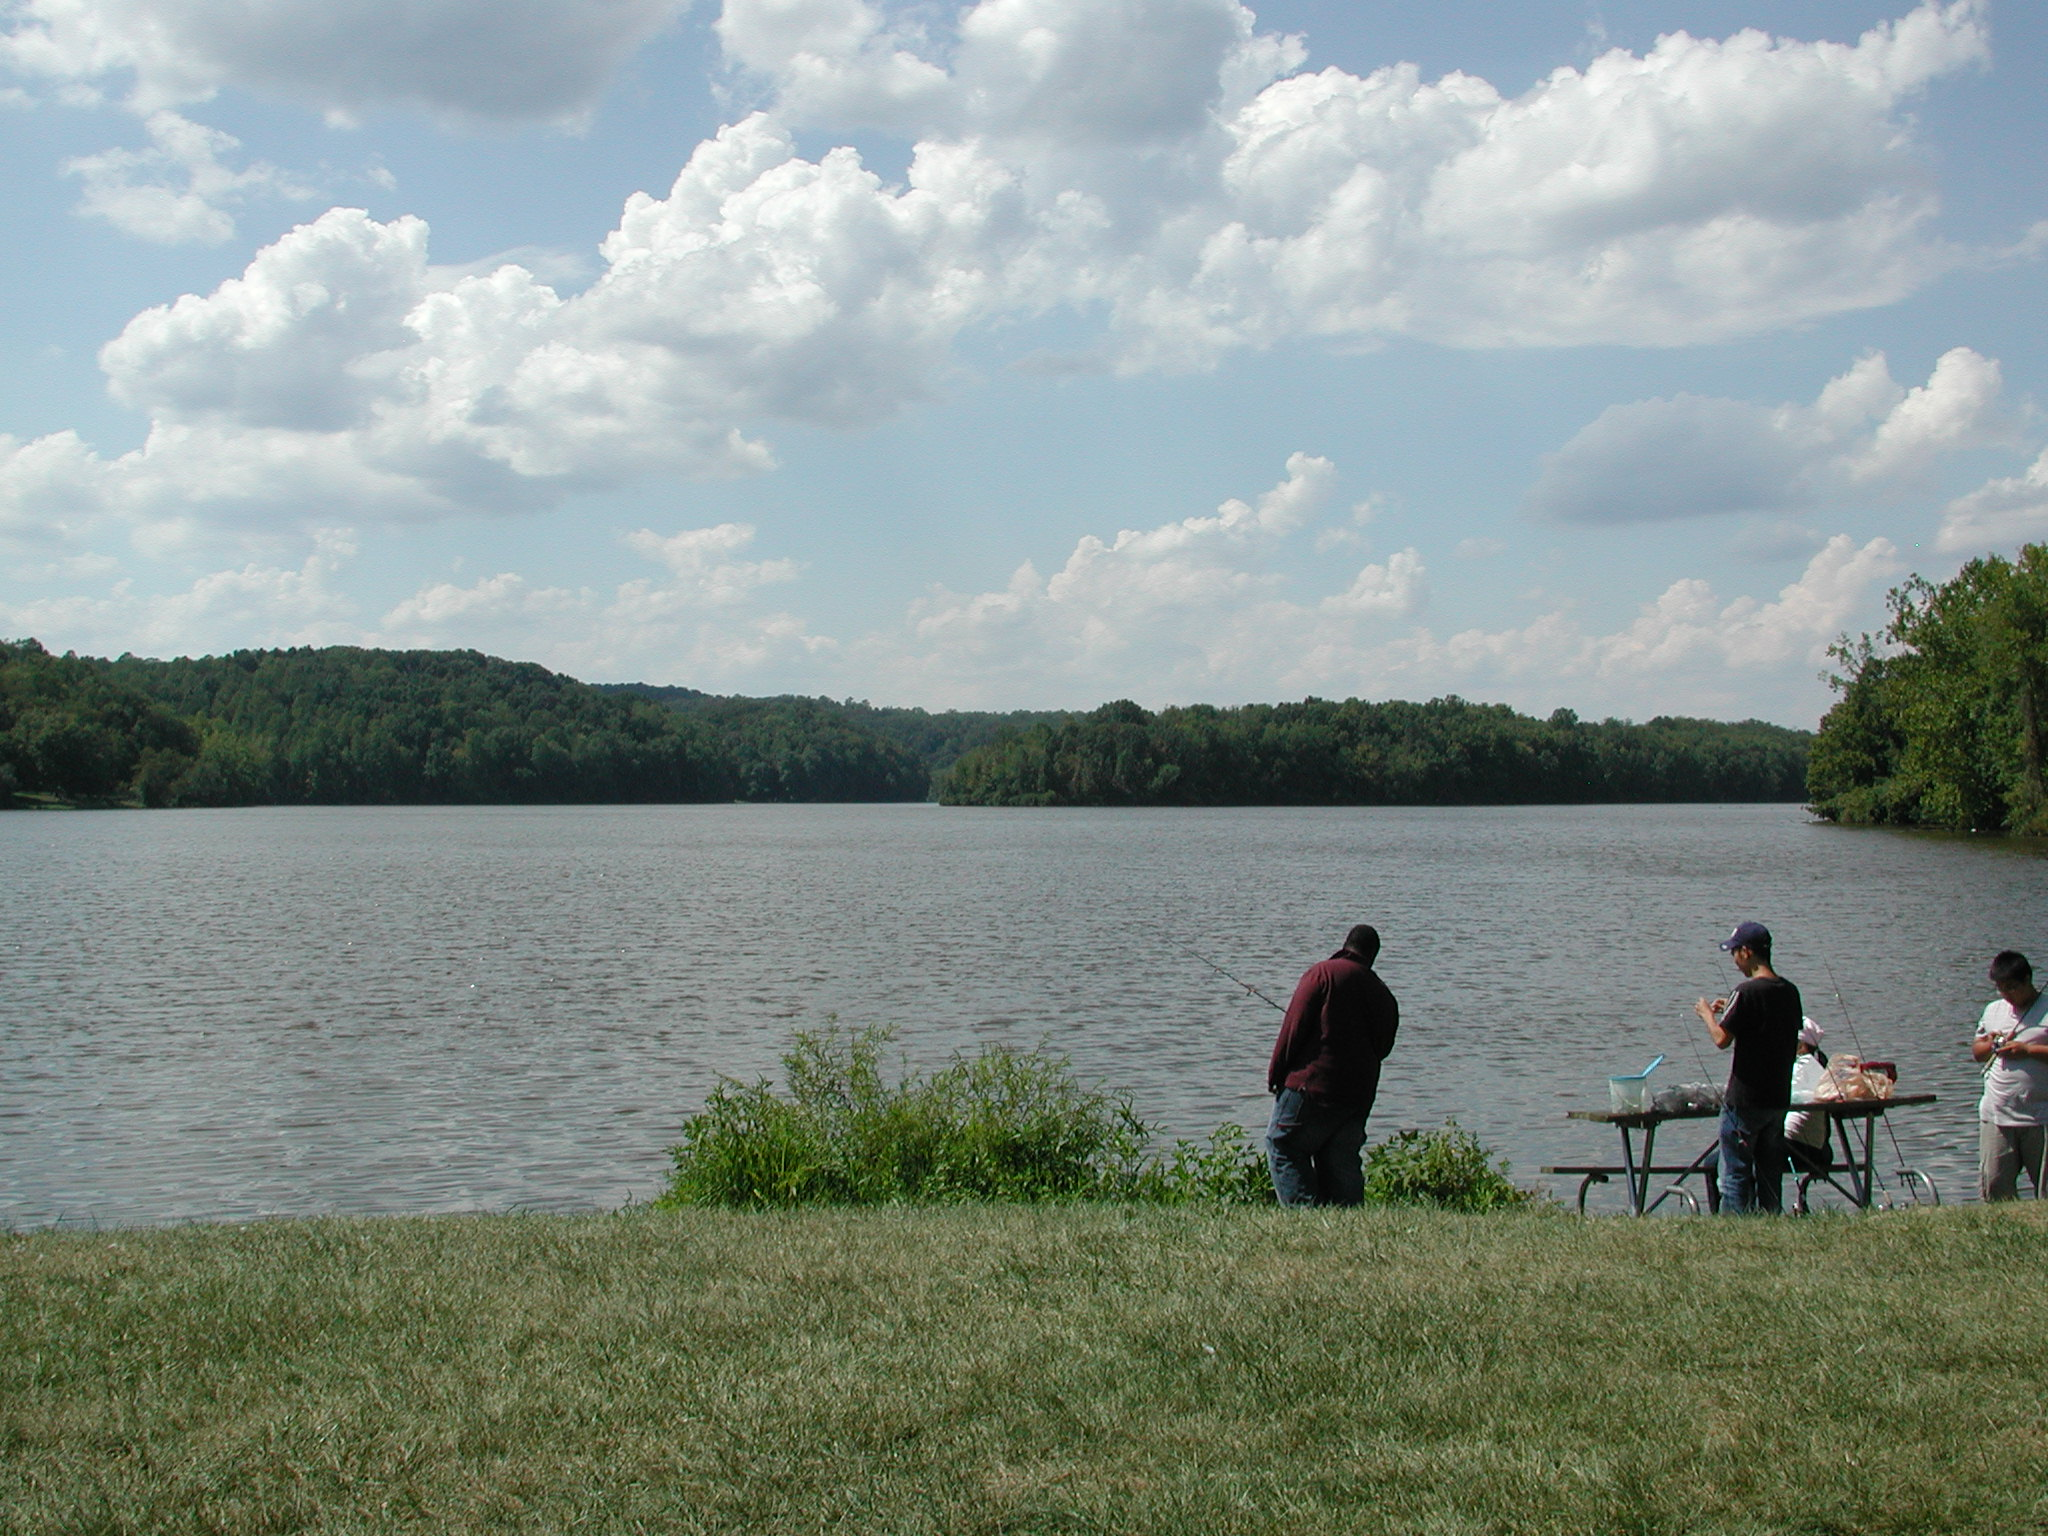 Athens Area Outdoor Recreation Guide Lake Logan State Park